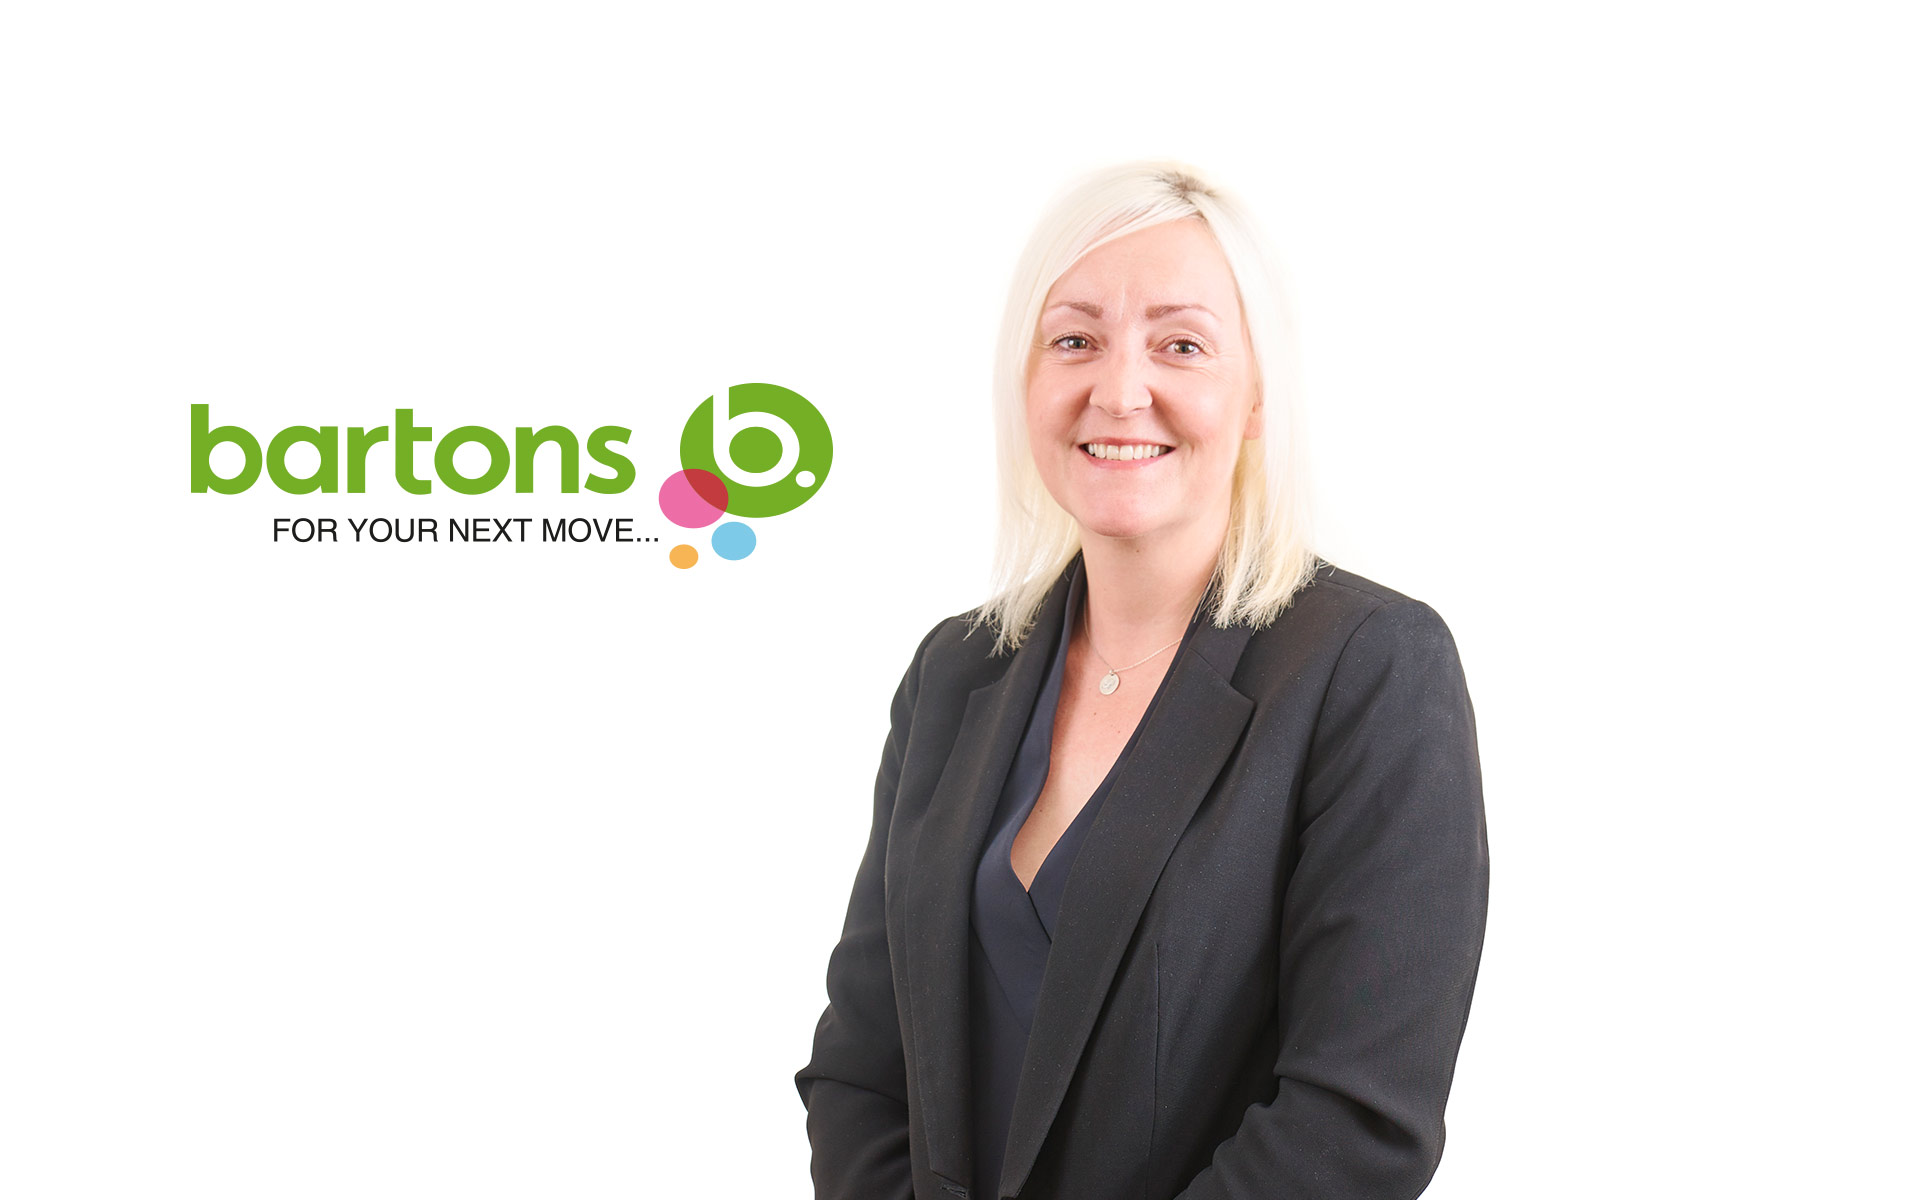 Bartons-IDEA-Rotherham-Photographer-Ruth